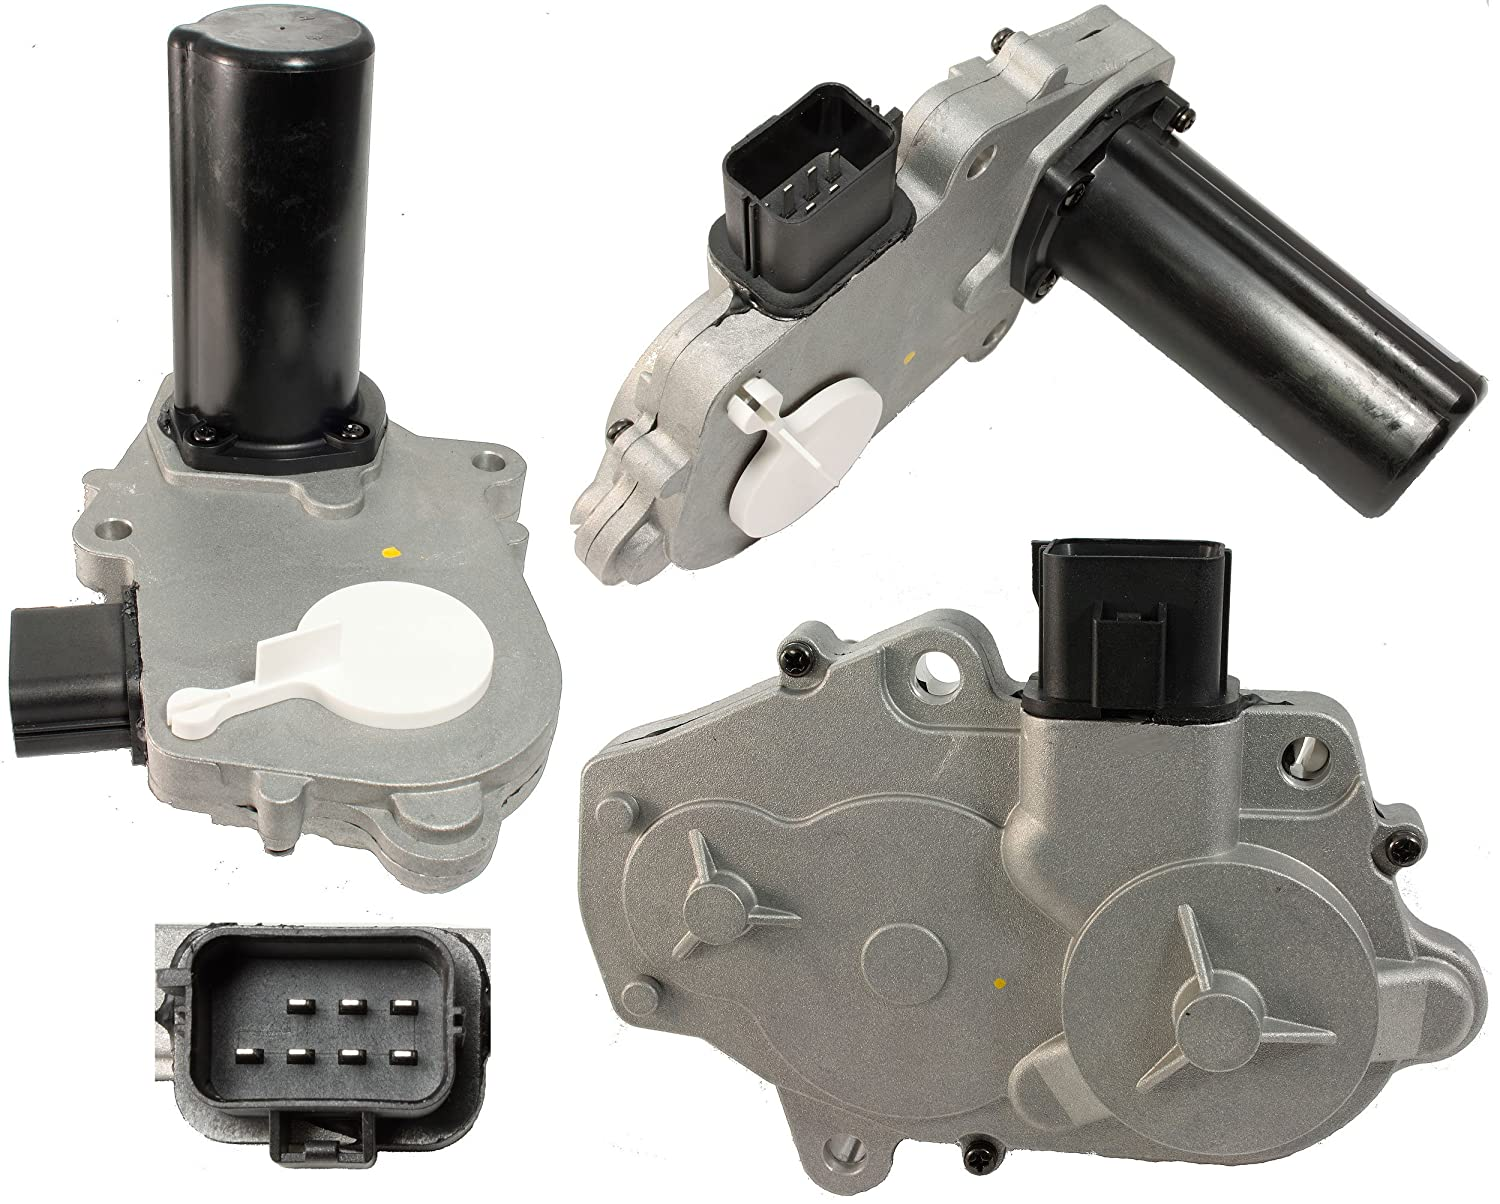 Apdty 711046 transfer case 4 wheel drive shift motor for Transfer case motor replacement cost